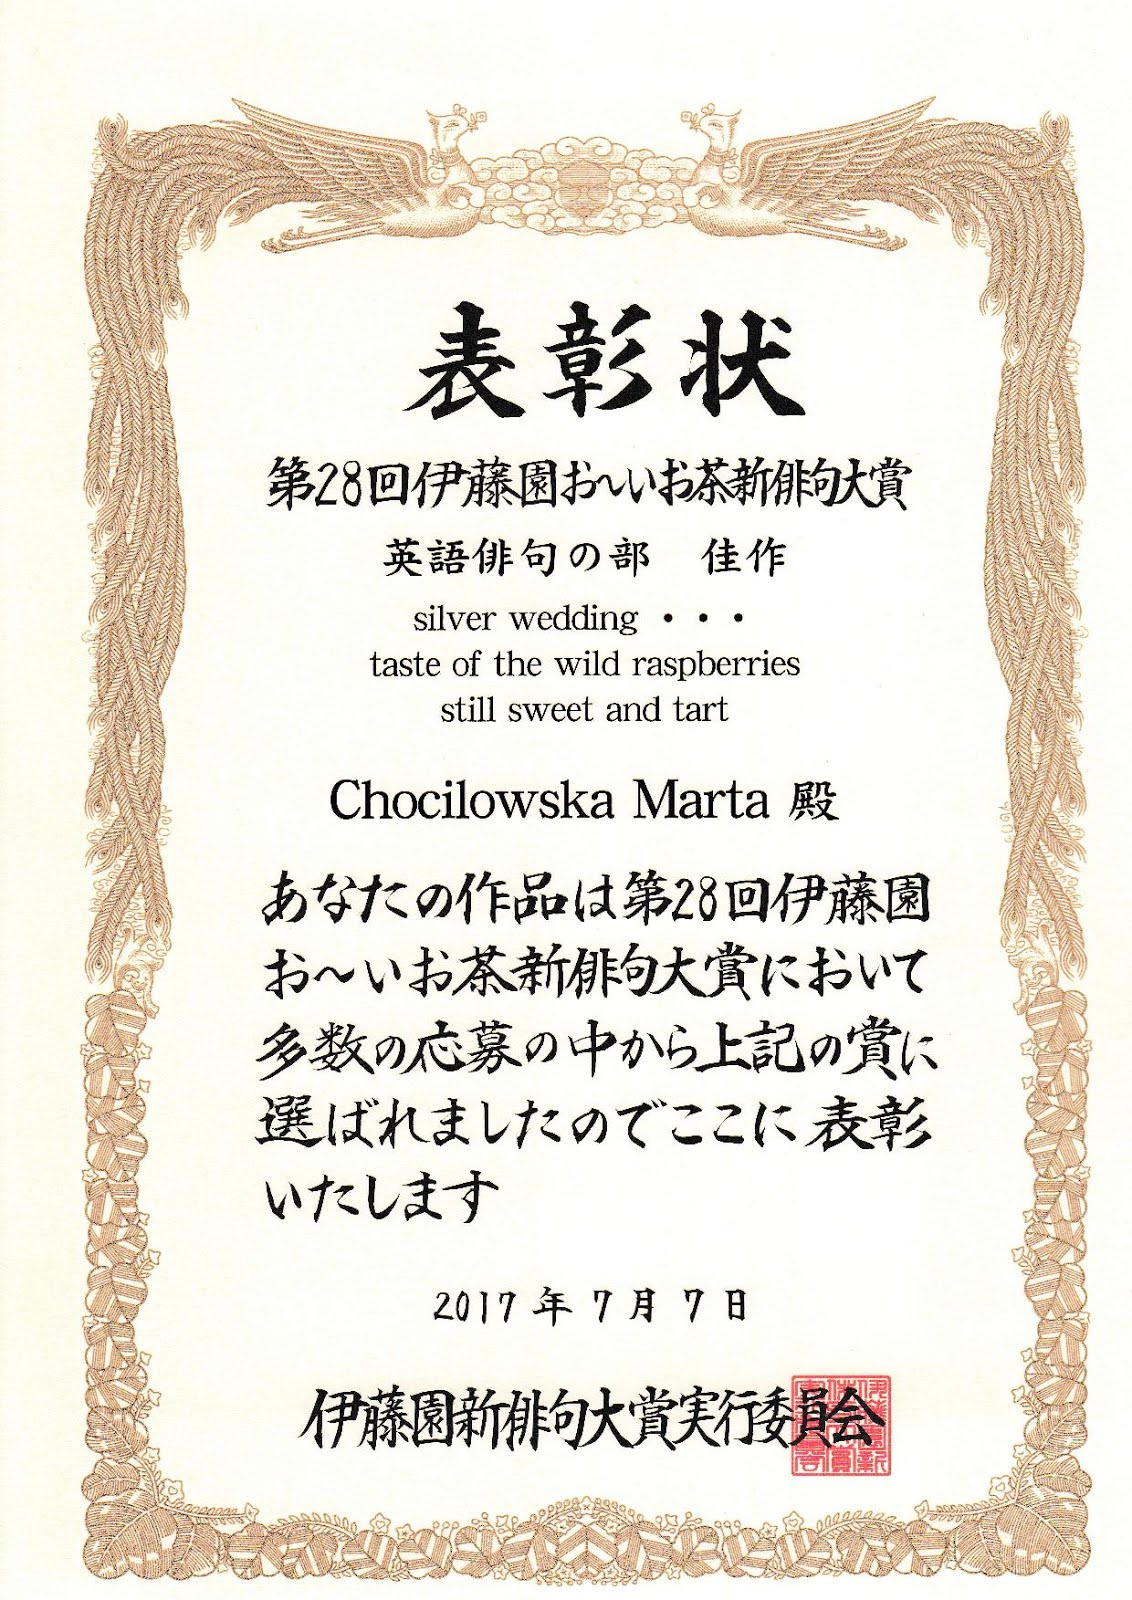 28th ITO EN Oi Ocha Merit Award